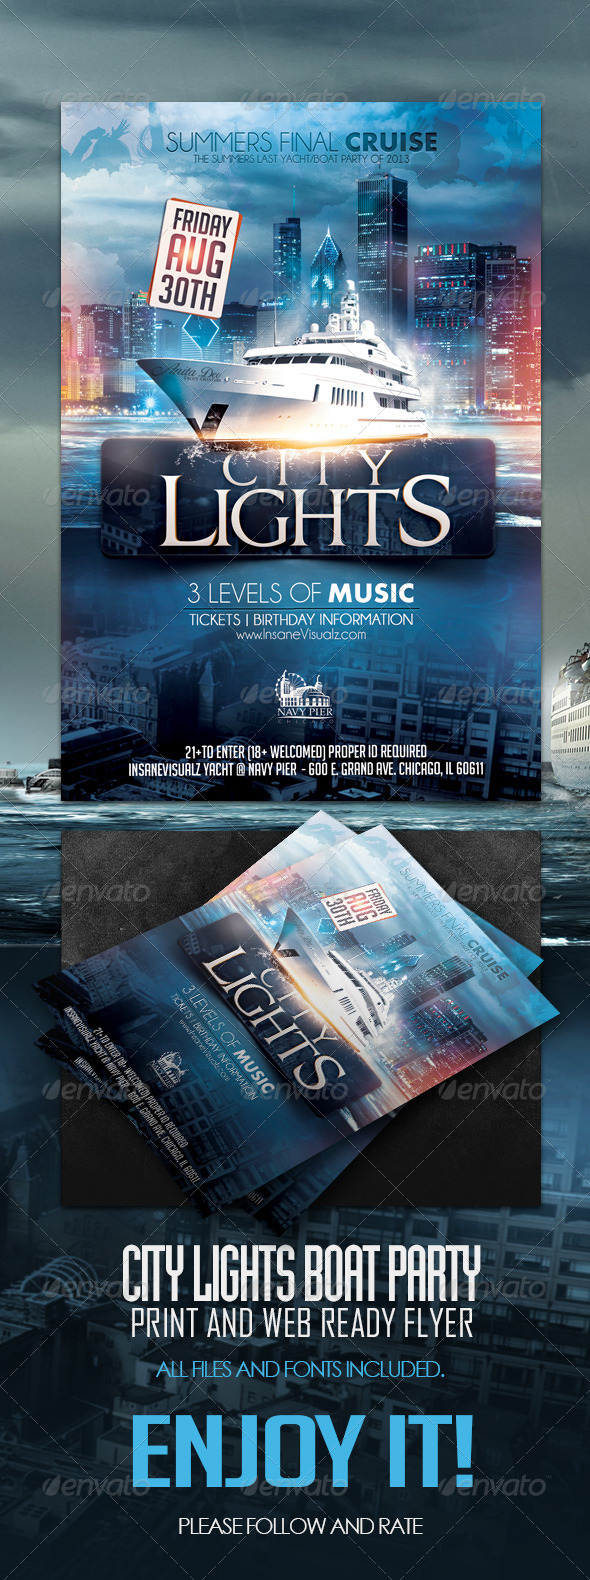 GraphicRiver City Lights Boat Party 5295936